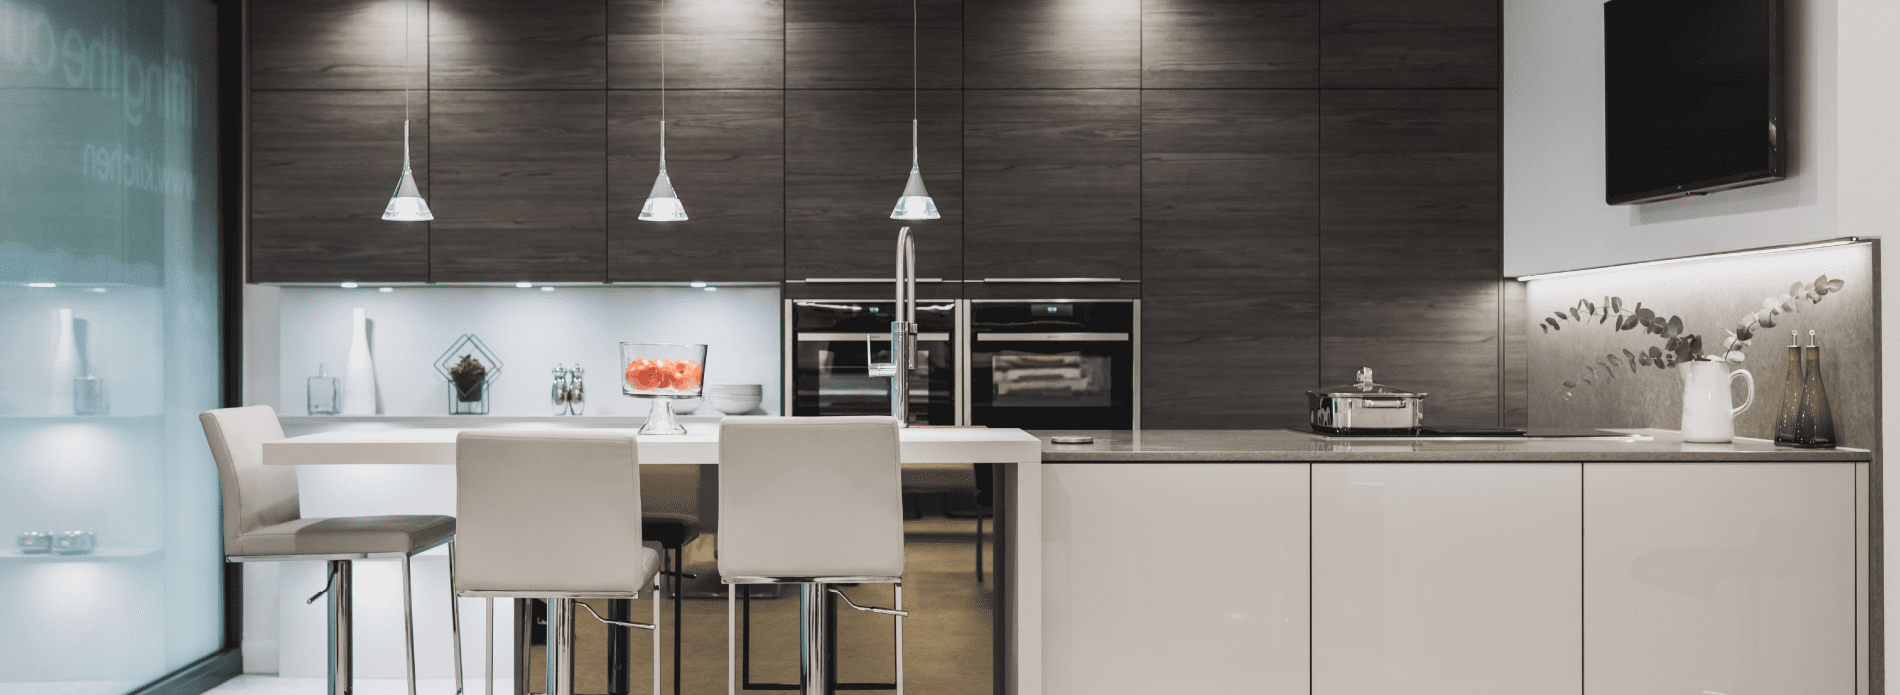 'Shop safely' with Kitchen Design Centre